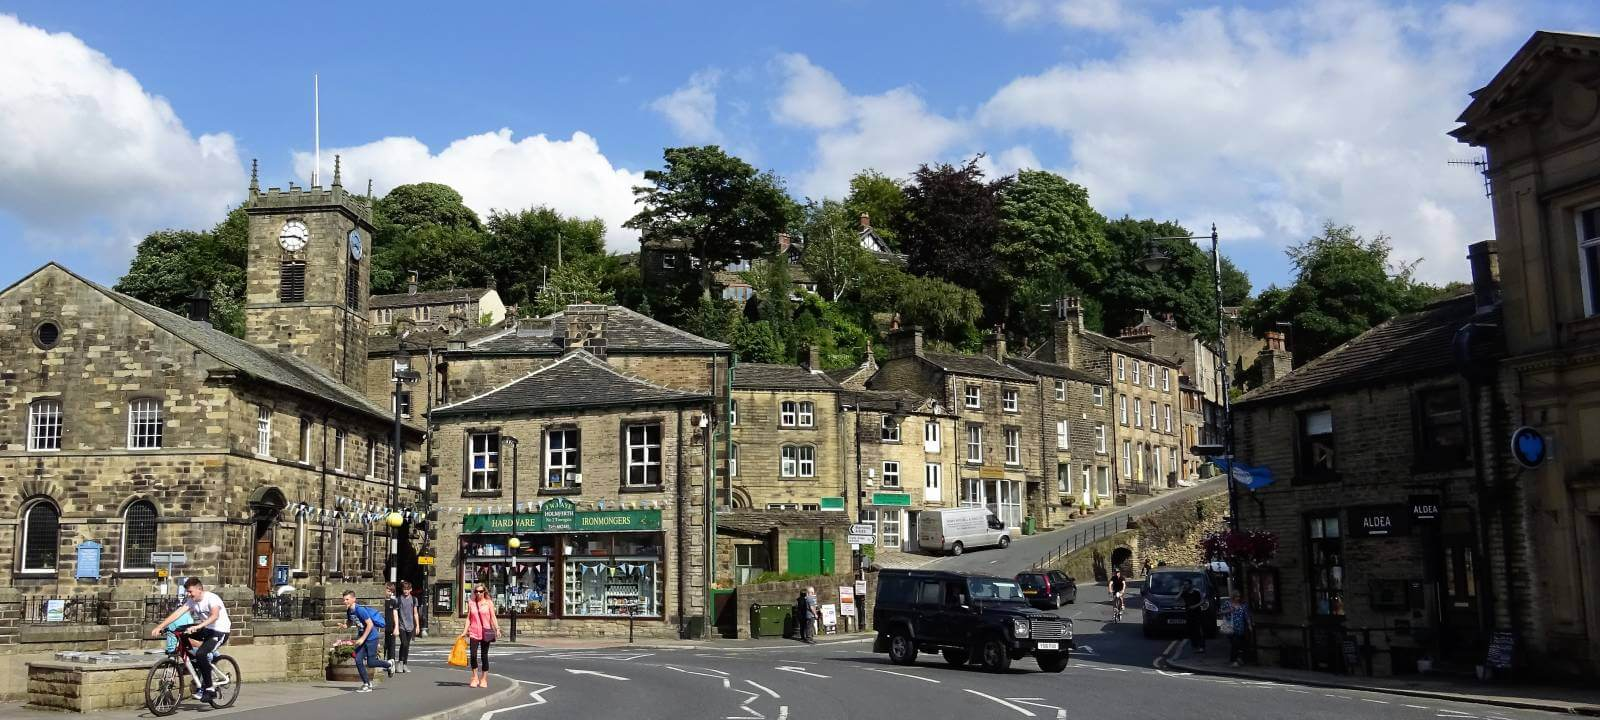 A traffic junction at Holmfirth, West Yorkshire.